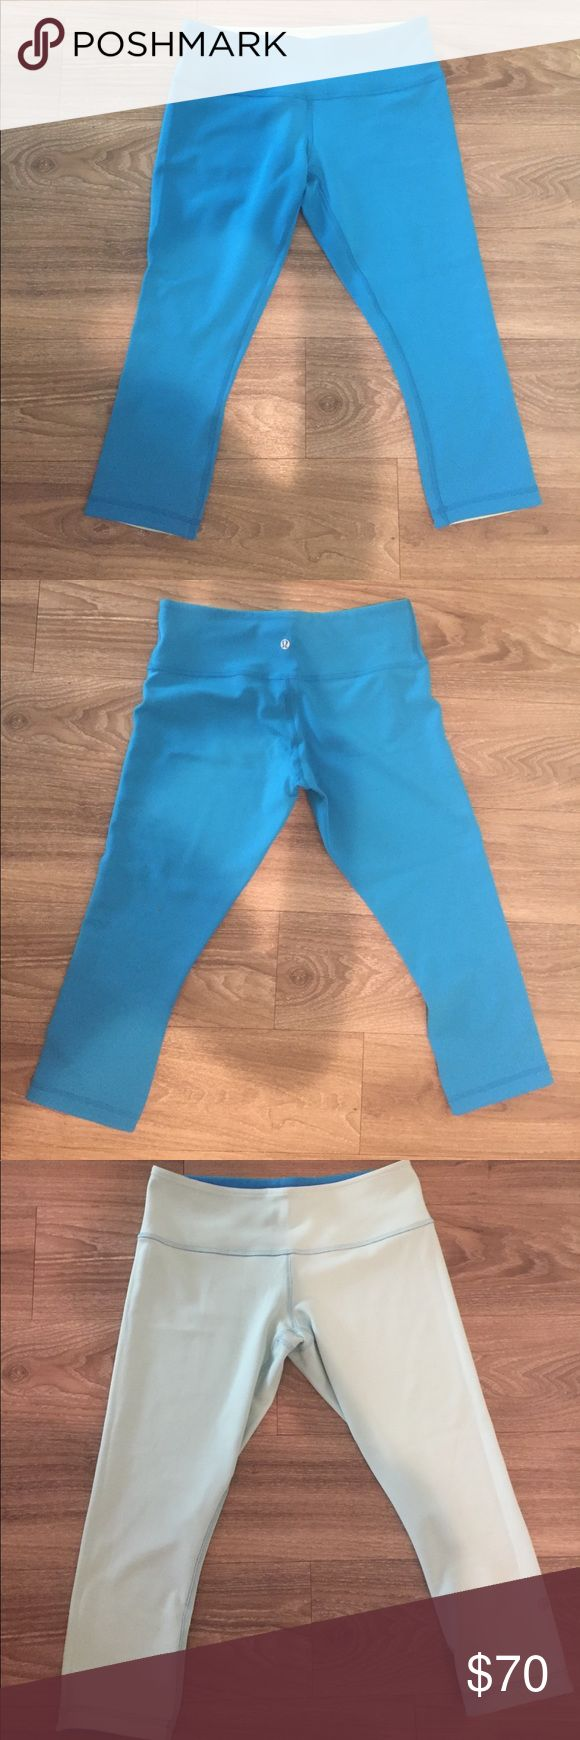 Lulu lemon crop pants Worn twice! Excellent condition. Reversible blue pants. Can be worn both ways. One side is baby blue and the other is bright blue. lululemon athletica Pants Ankle & Cropped